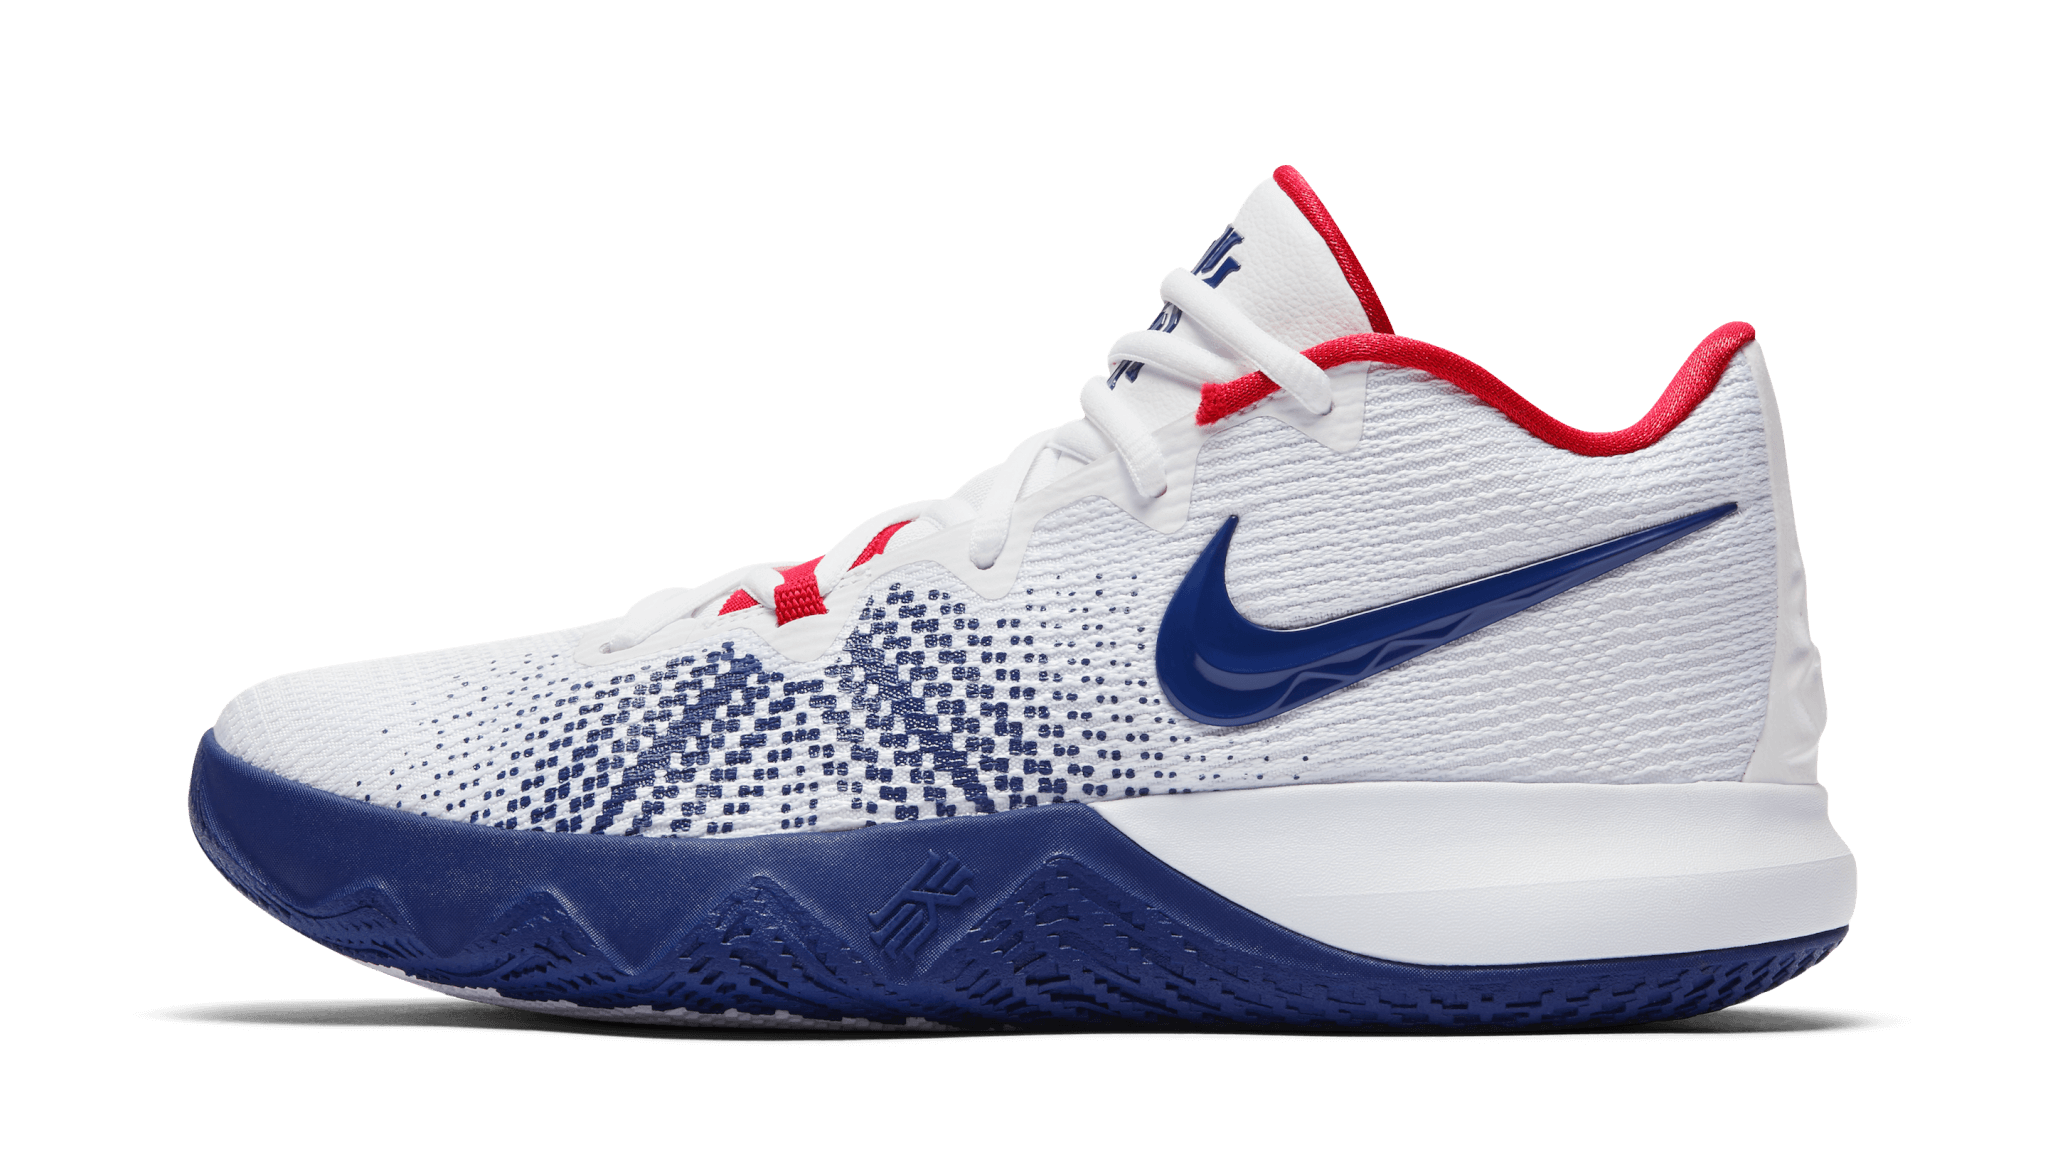 0a7752cde77a Nike Kyrie Flytrap Performance Review